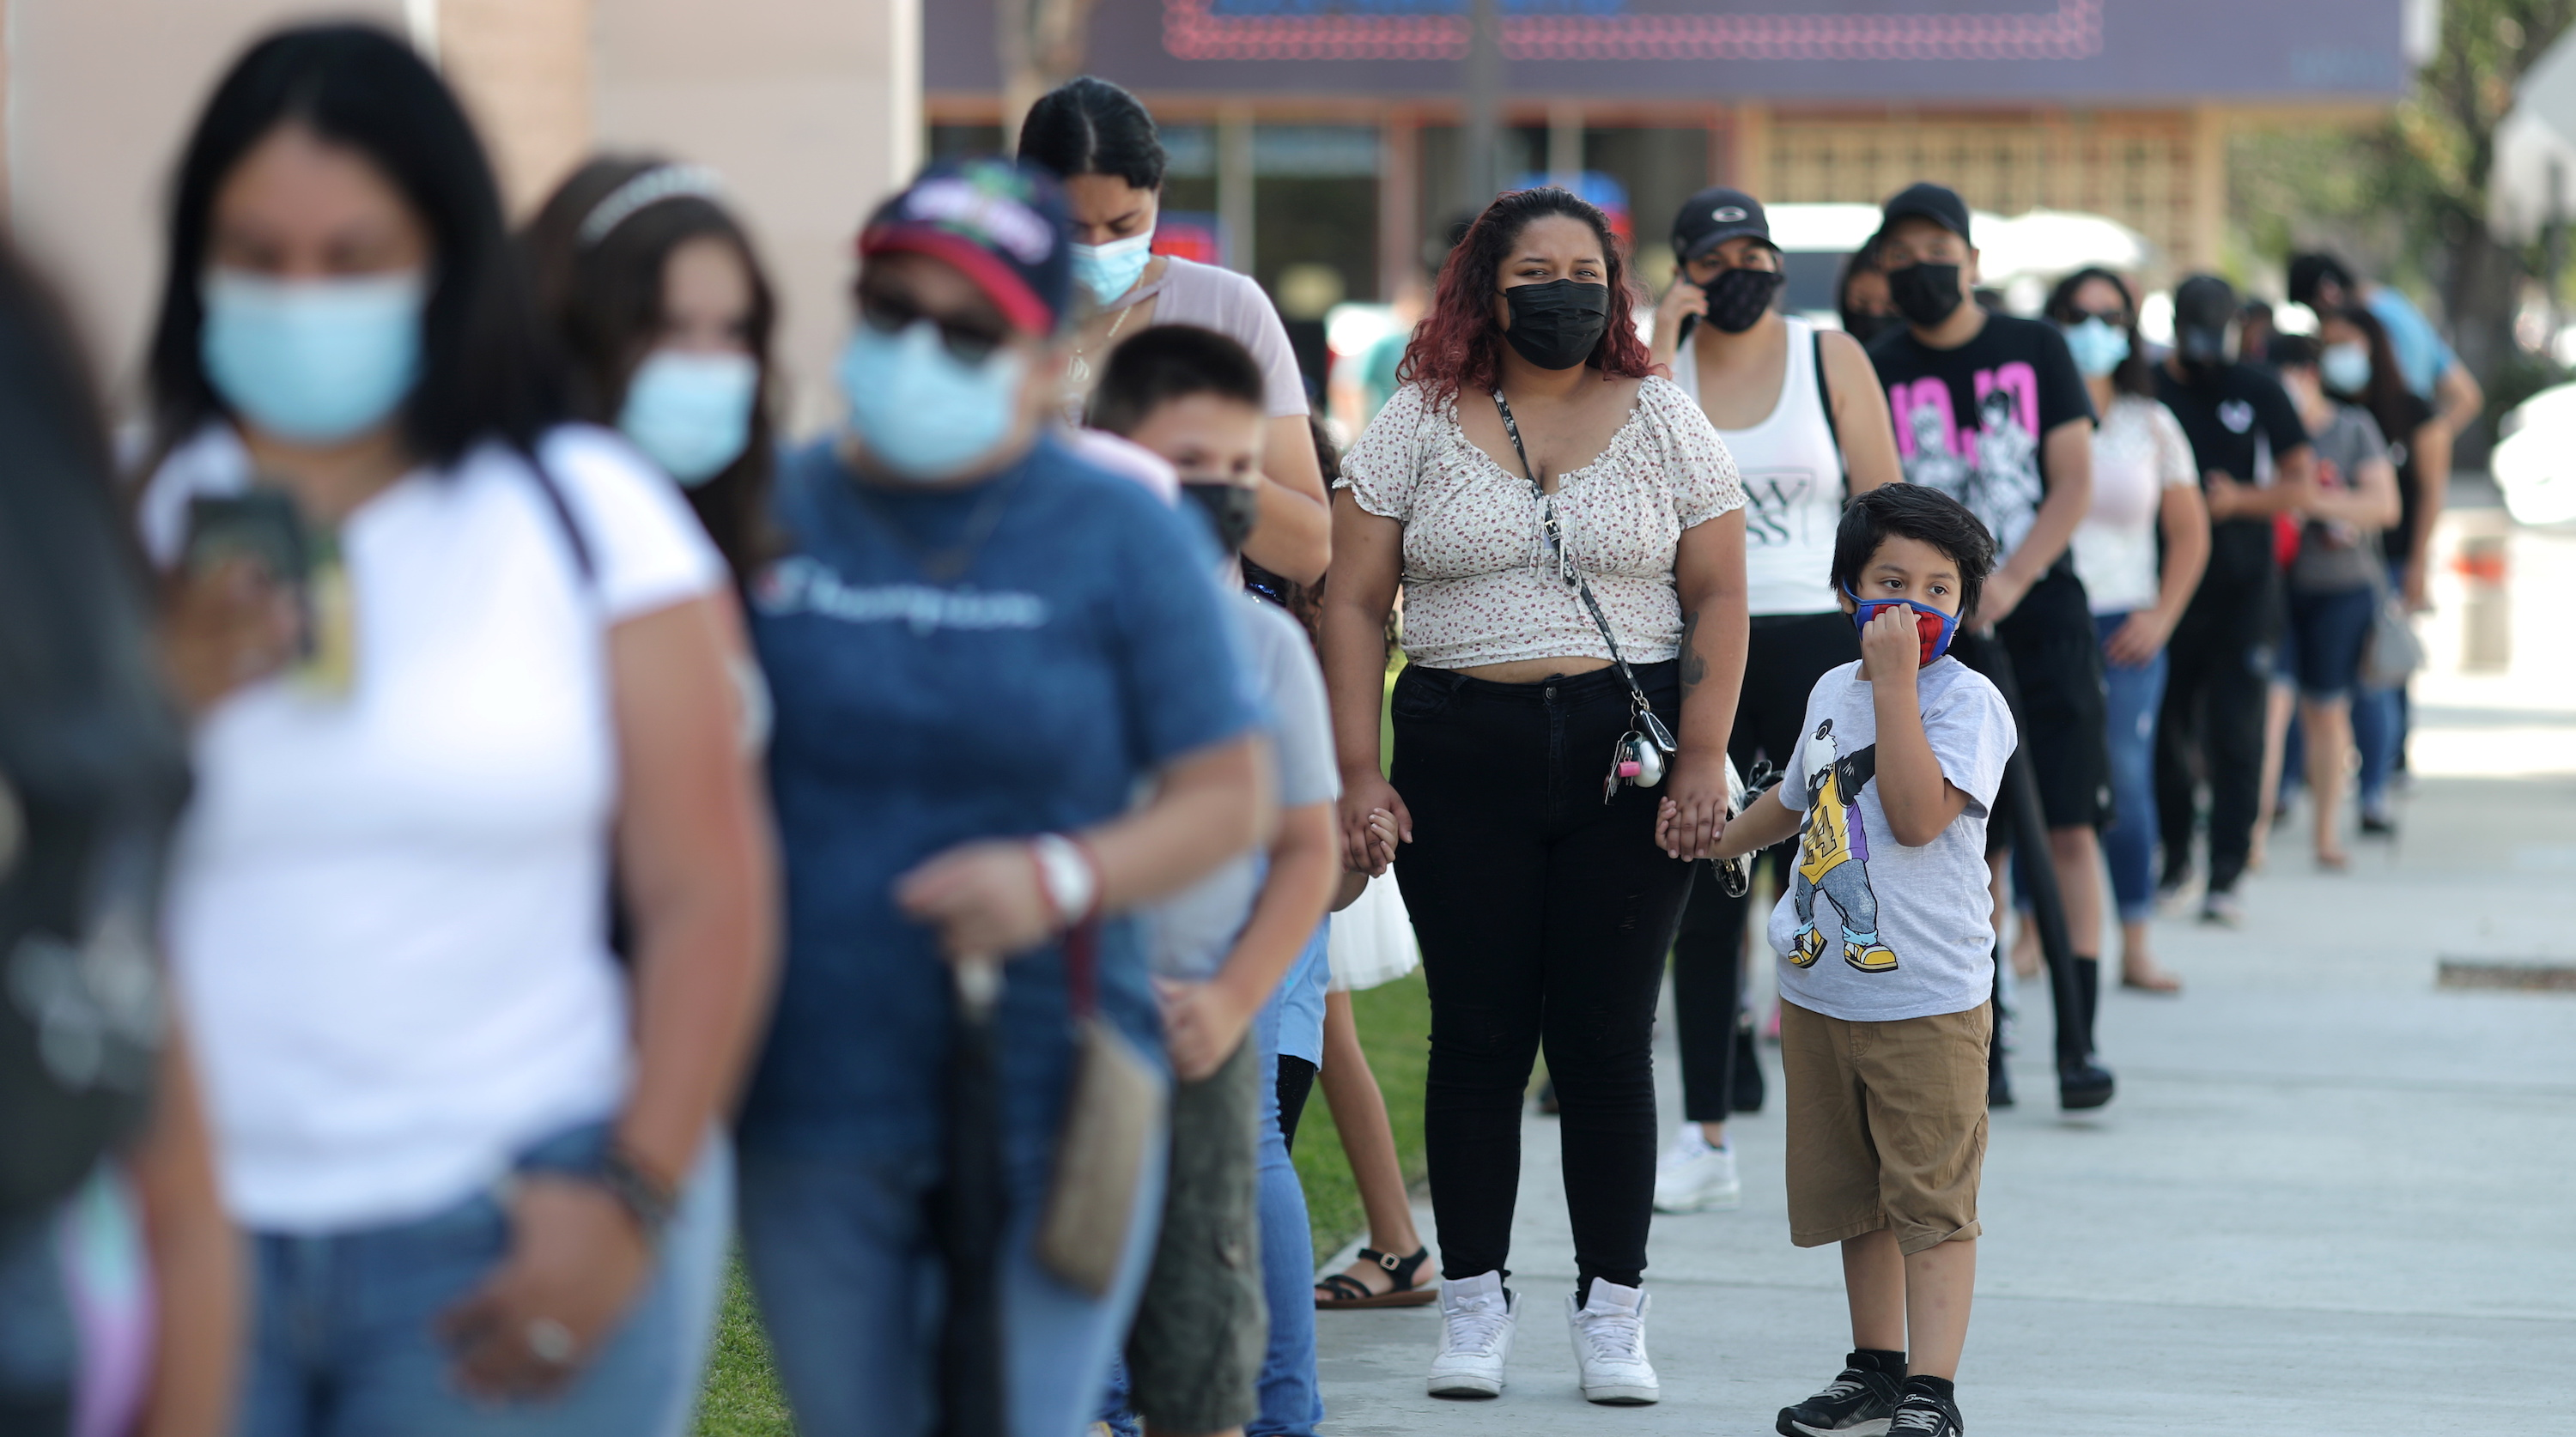 People waiting in line outside a Covid testing site wearing masks